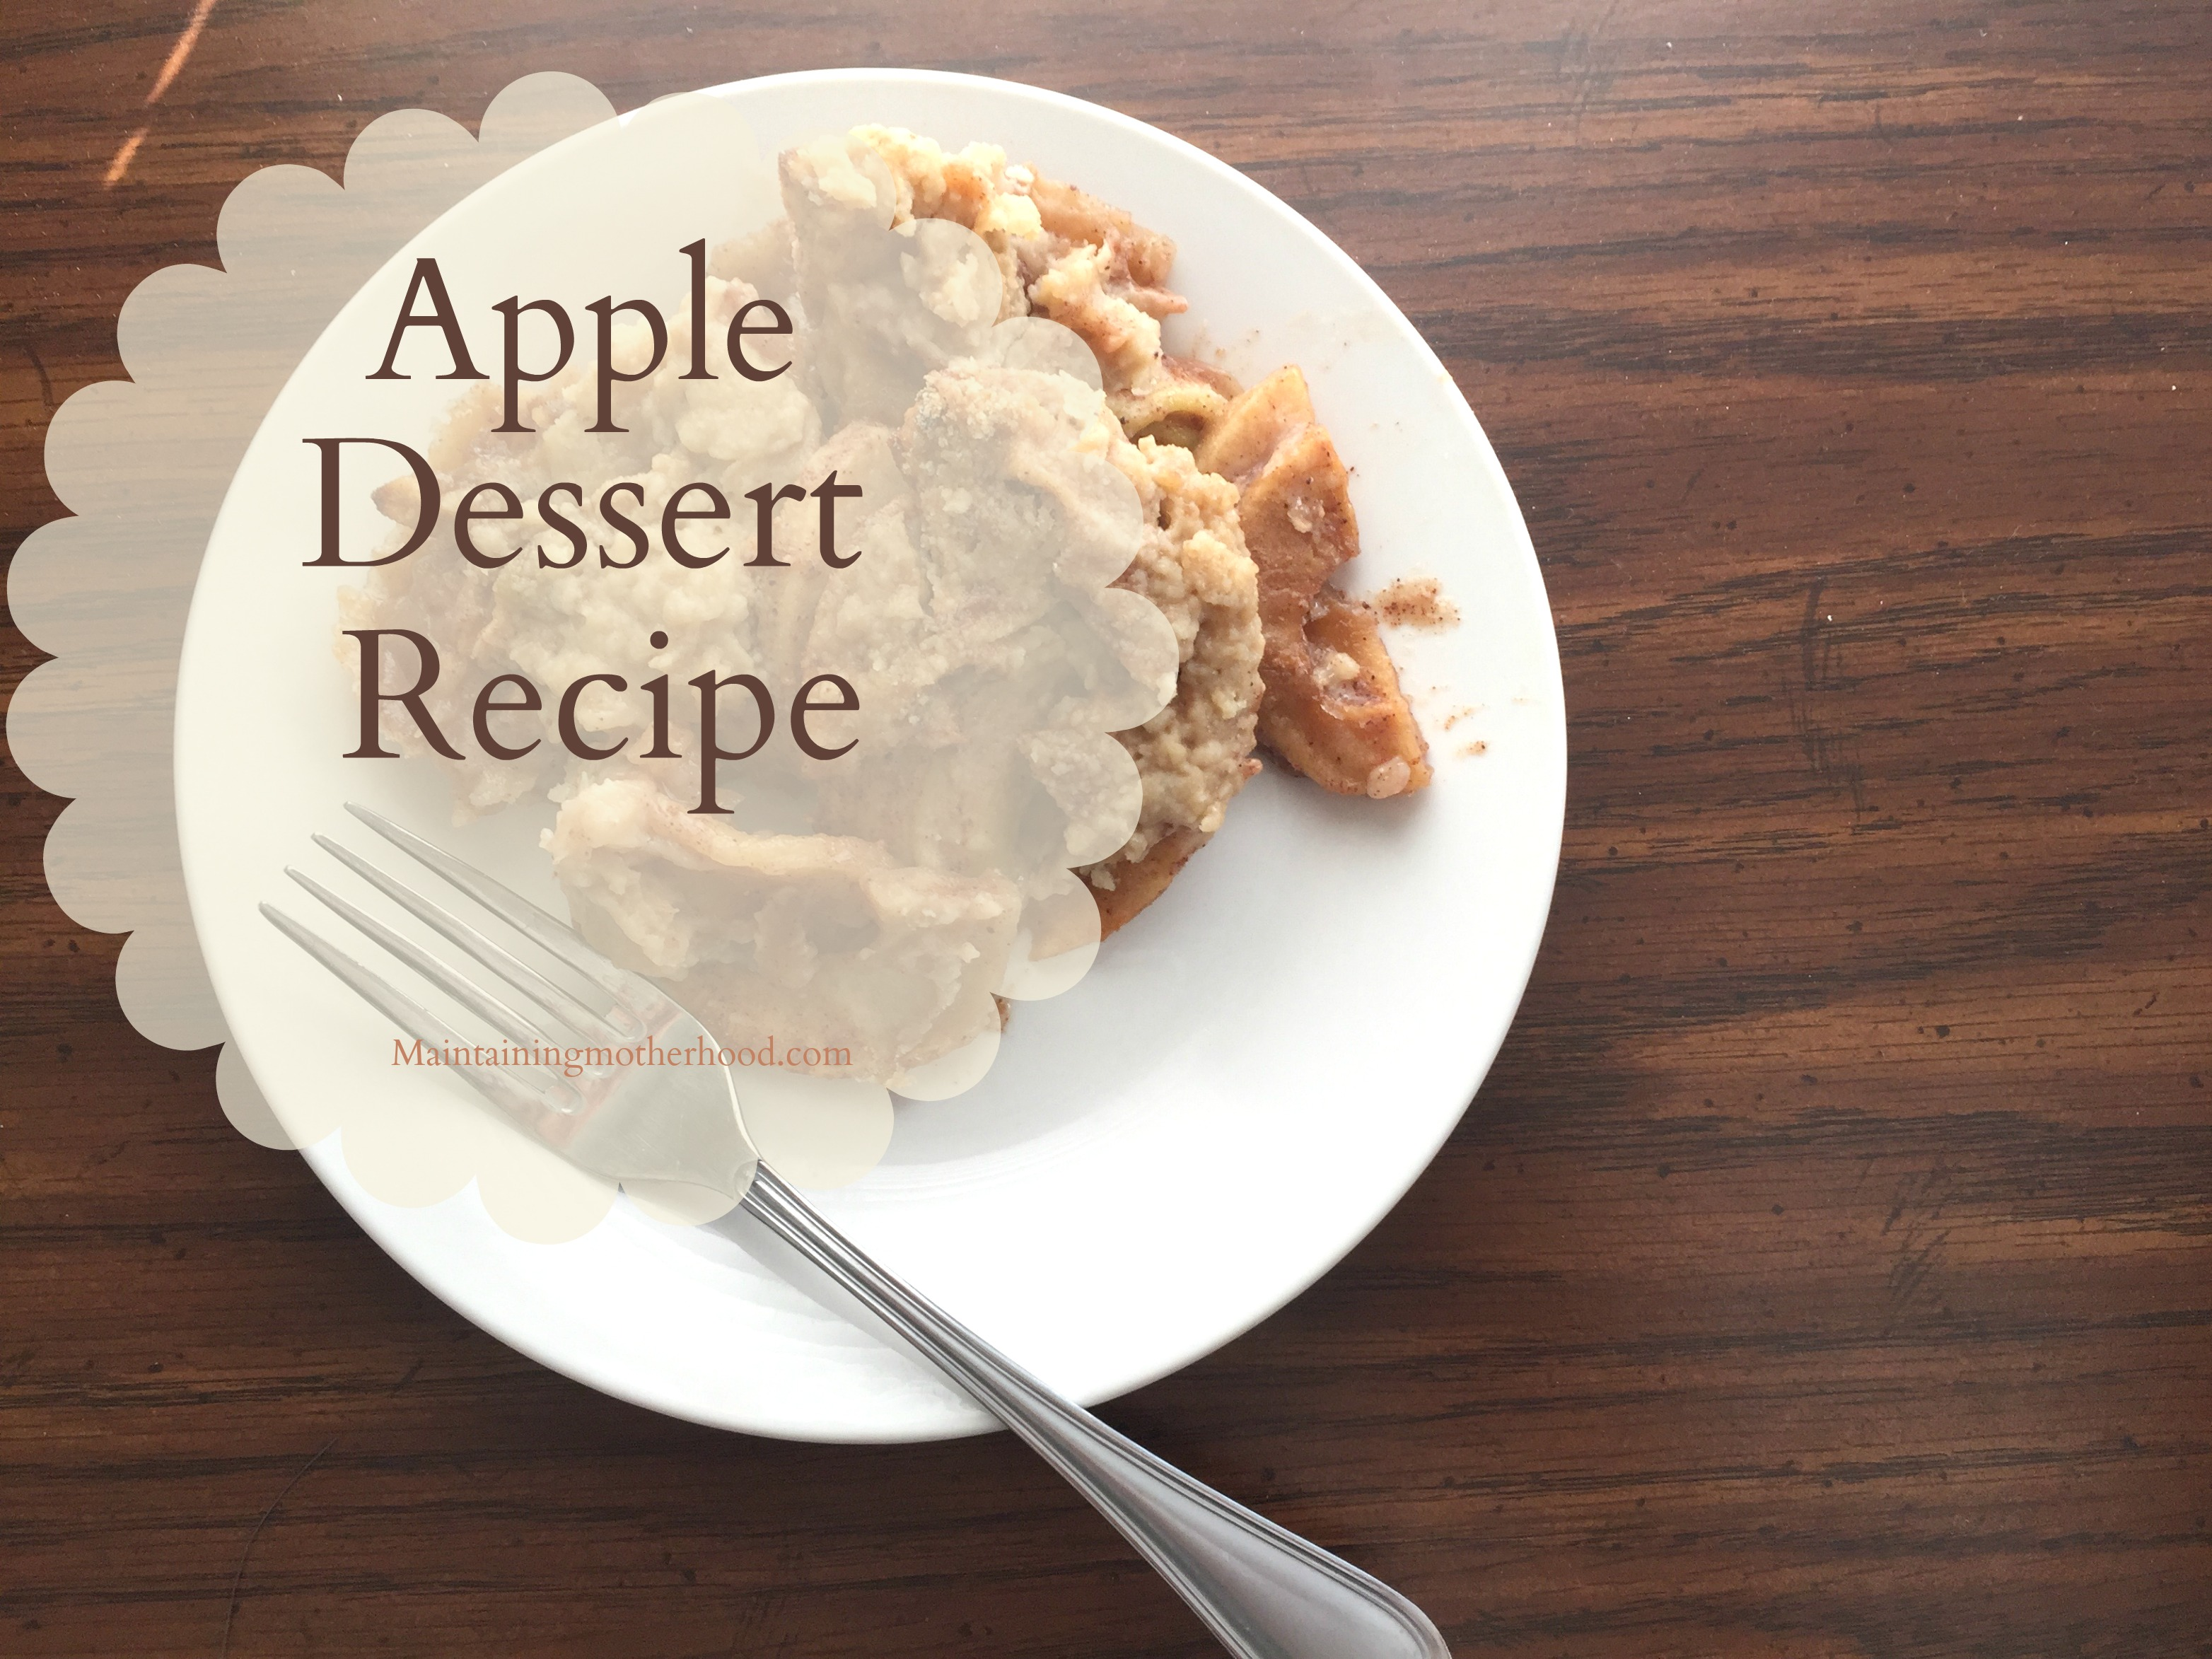 Looking for a delicious alternative to pie? This apple dessert is the perfect marriage of apple pie with a crispy, crumbly, and strudel topping.